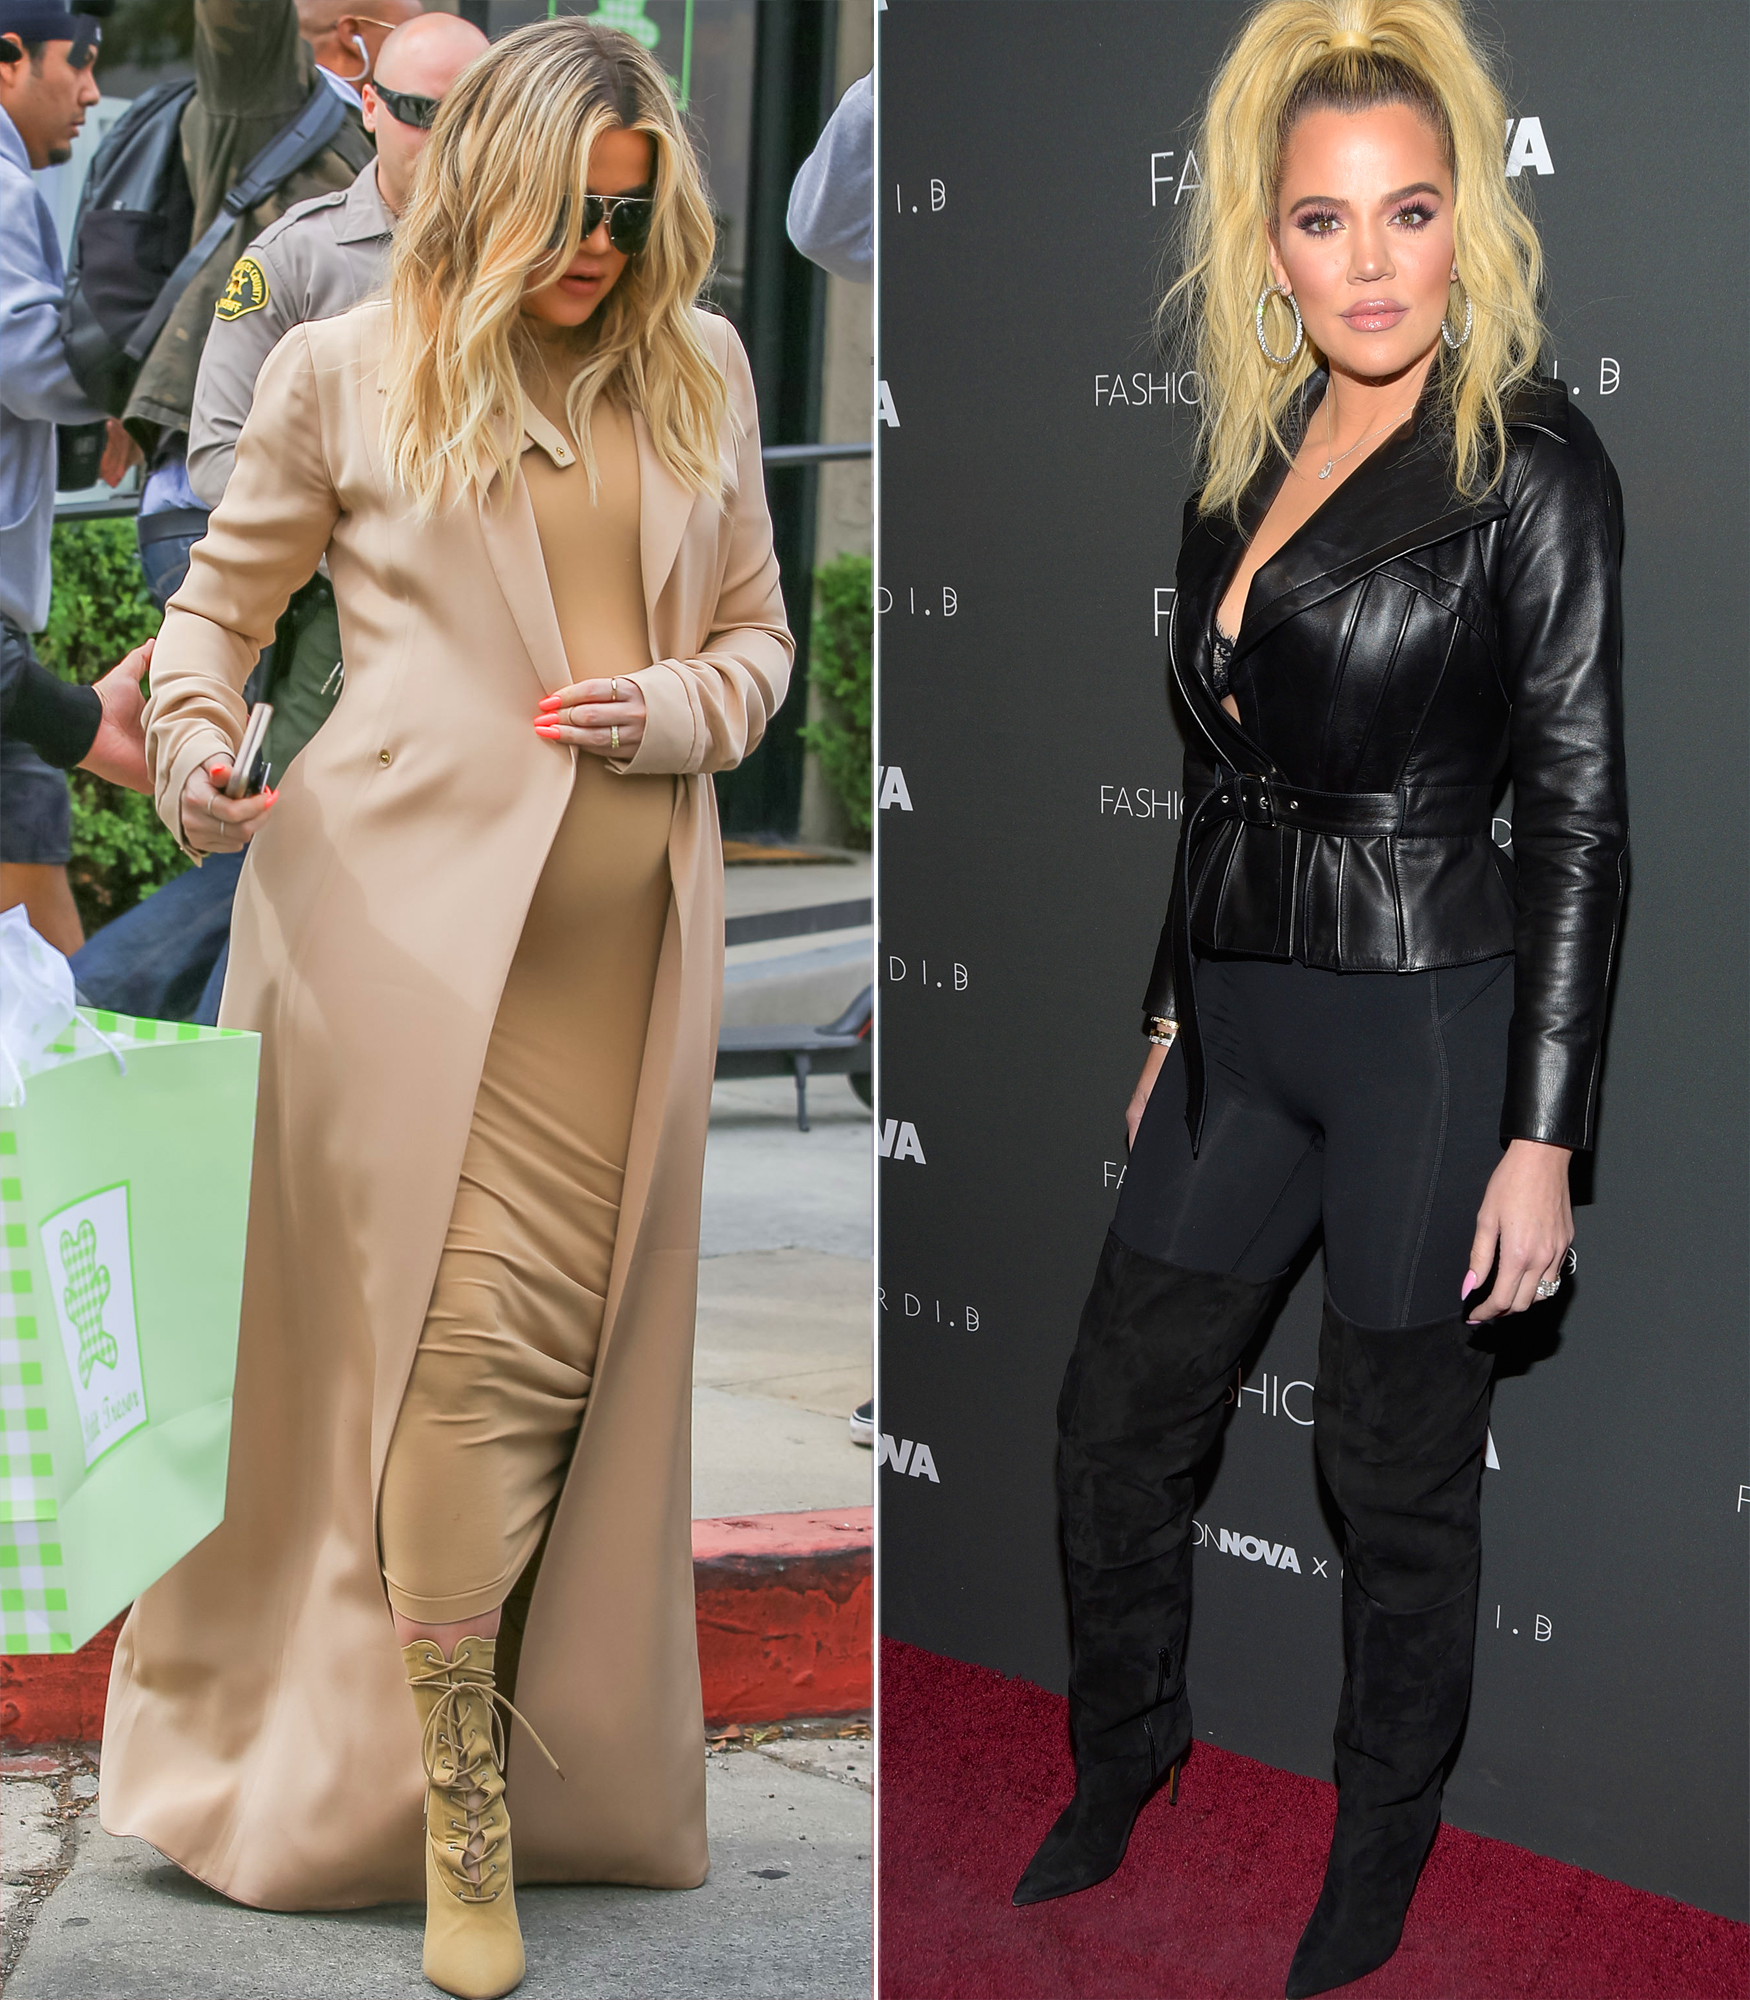 "celebrity baby weight loss 2018 - In July, the Keeping Up With the Kardashians star announced she'd dropped 33 pounds since giving birth to her daughter, True, three months earlier on April 12. On her app, she credited the weight loss to a ""combination of breastfeeding and being very active."""